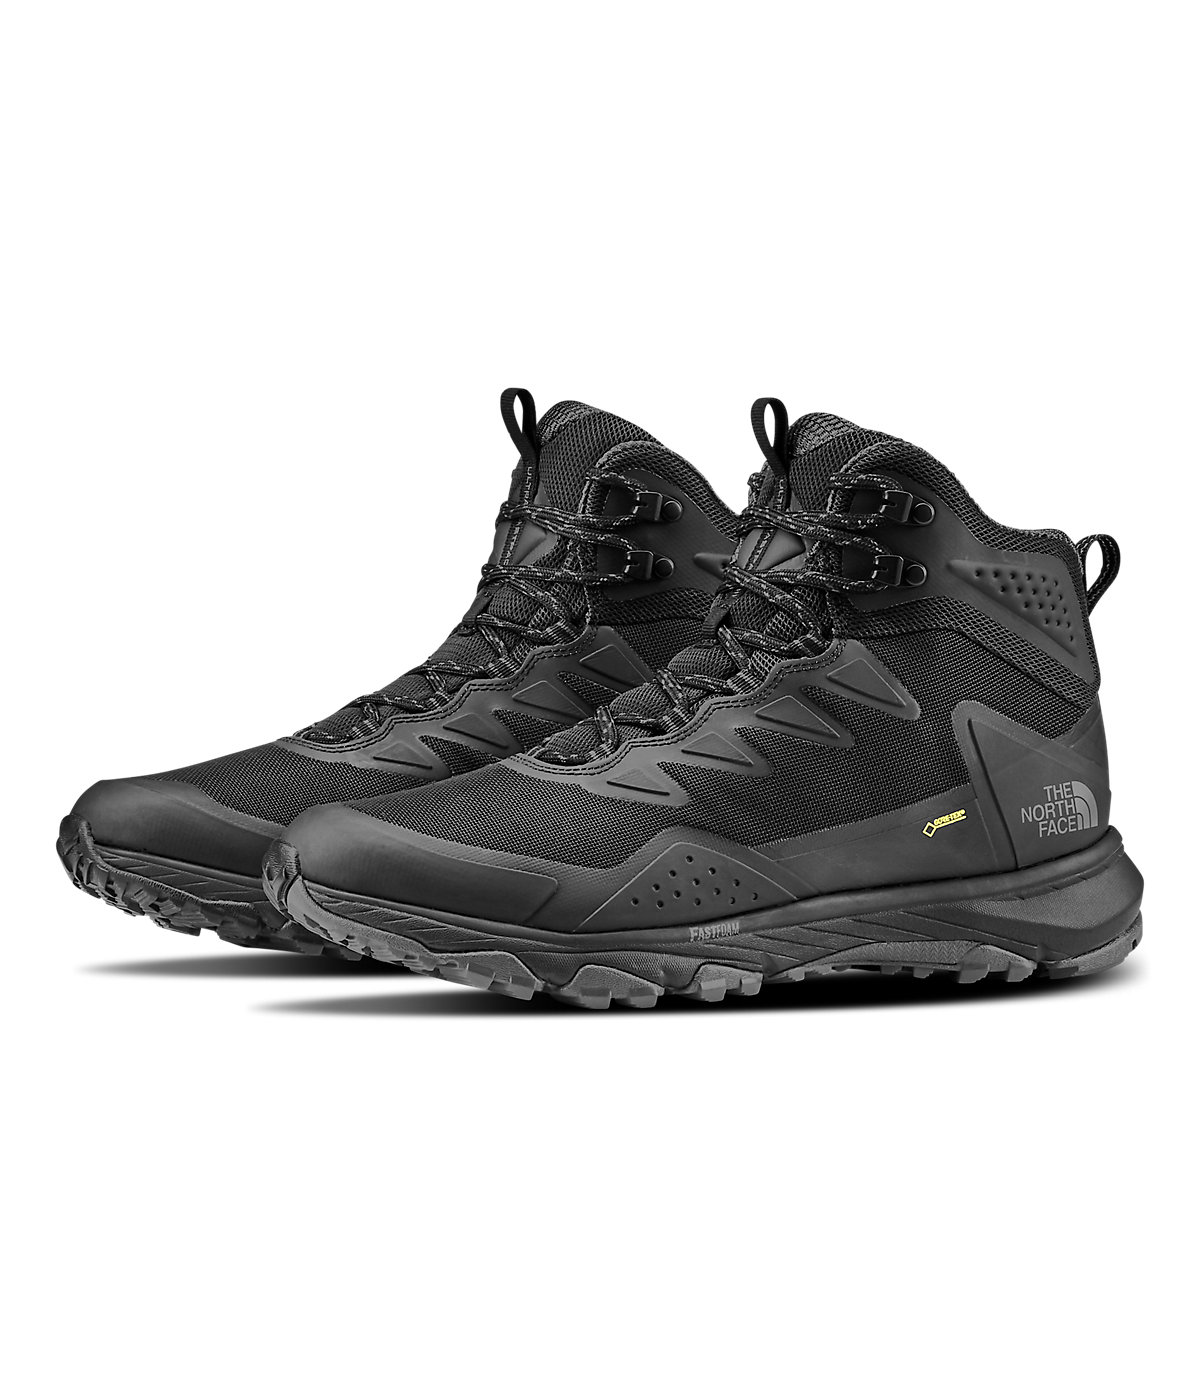 The North Face Men's Ultra Fastpack III Mid GTX Shoes in